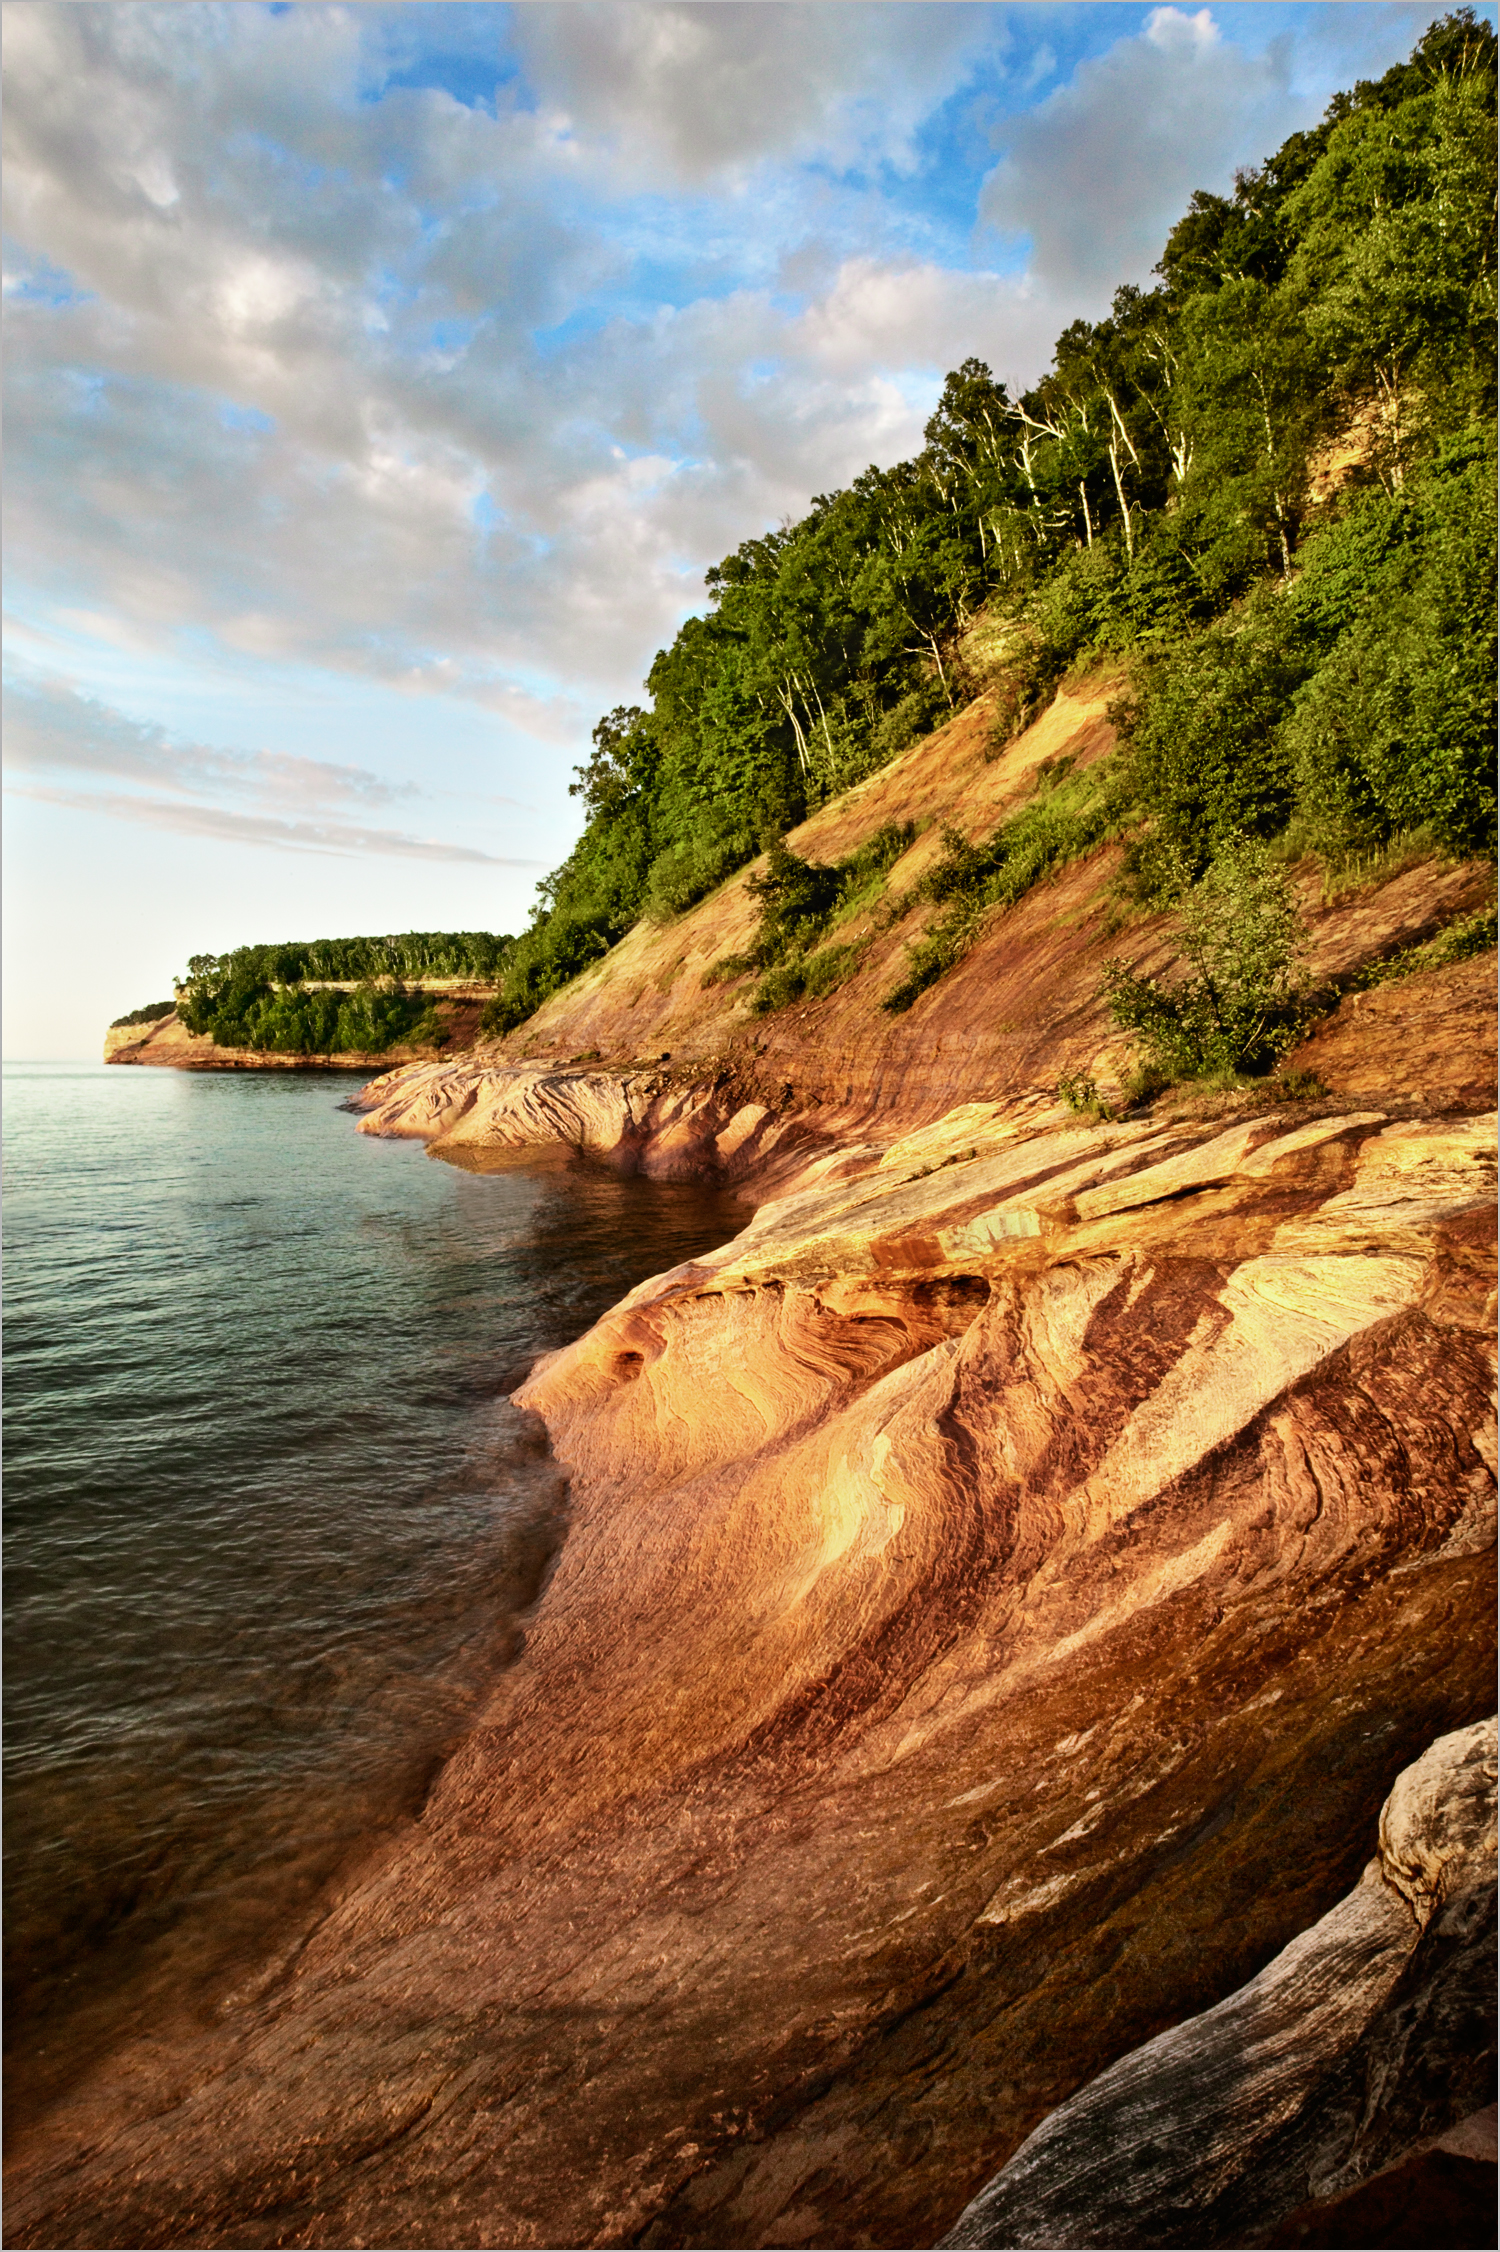 Pictured Rocks National Lakeshore in Michigan's Upper Peninsula.